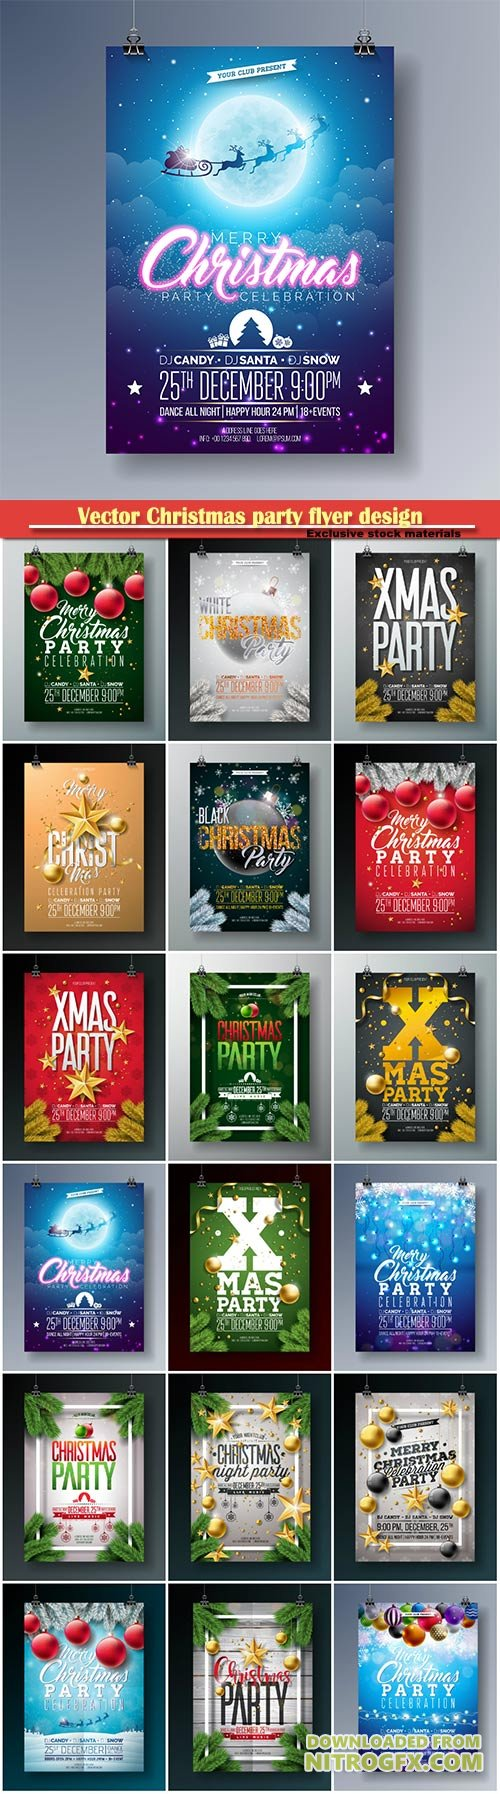 Vector Christmas party flyer design, holiday typography elements